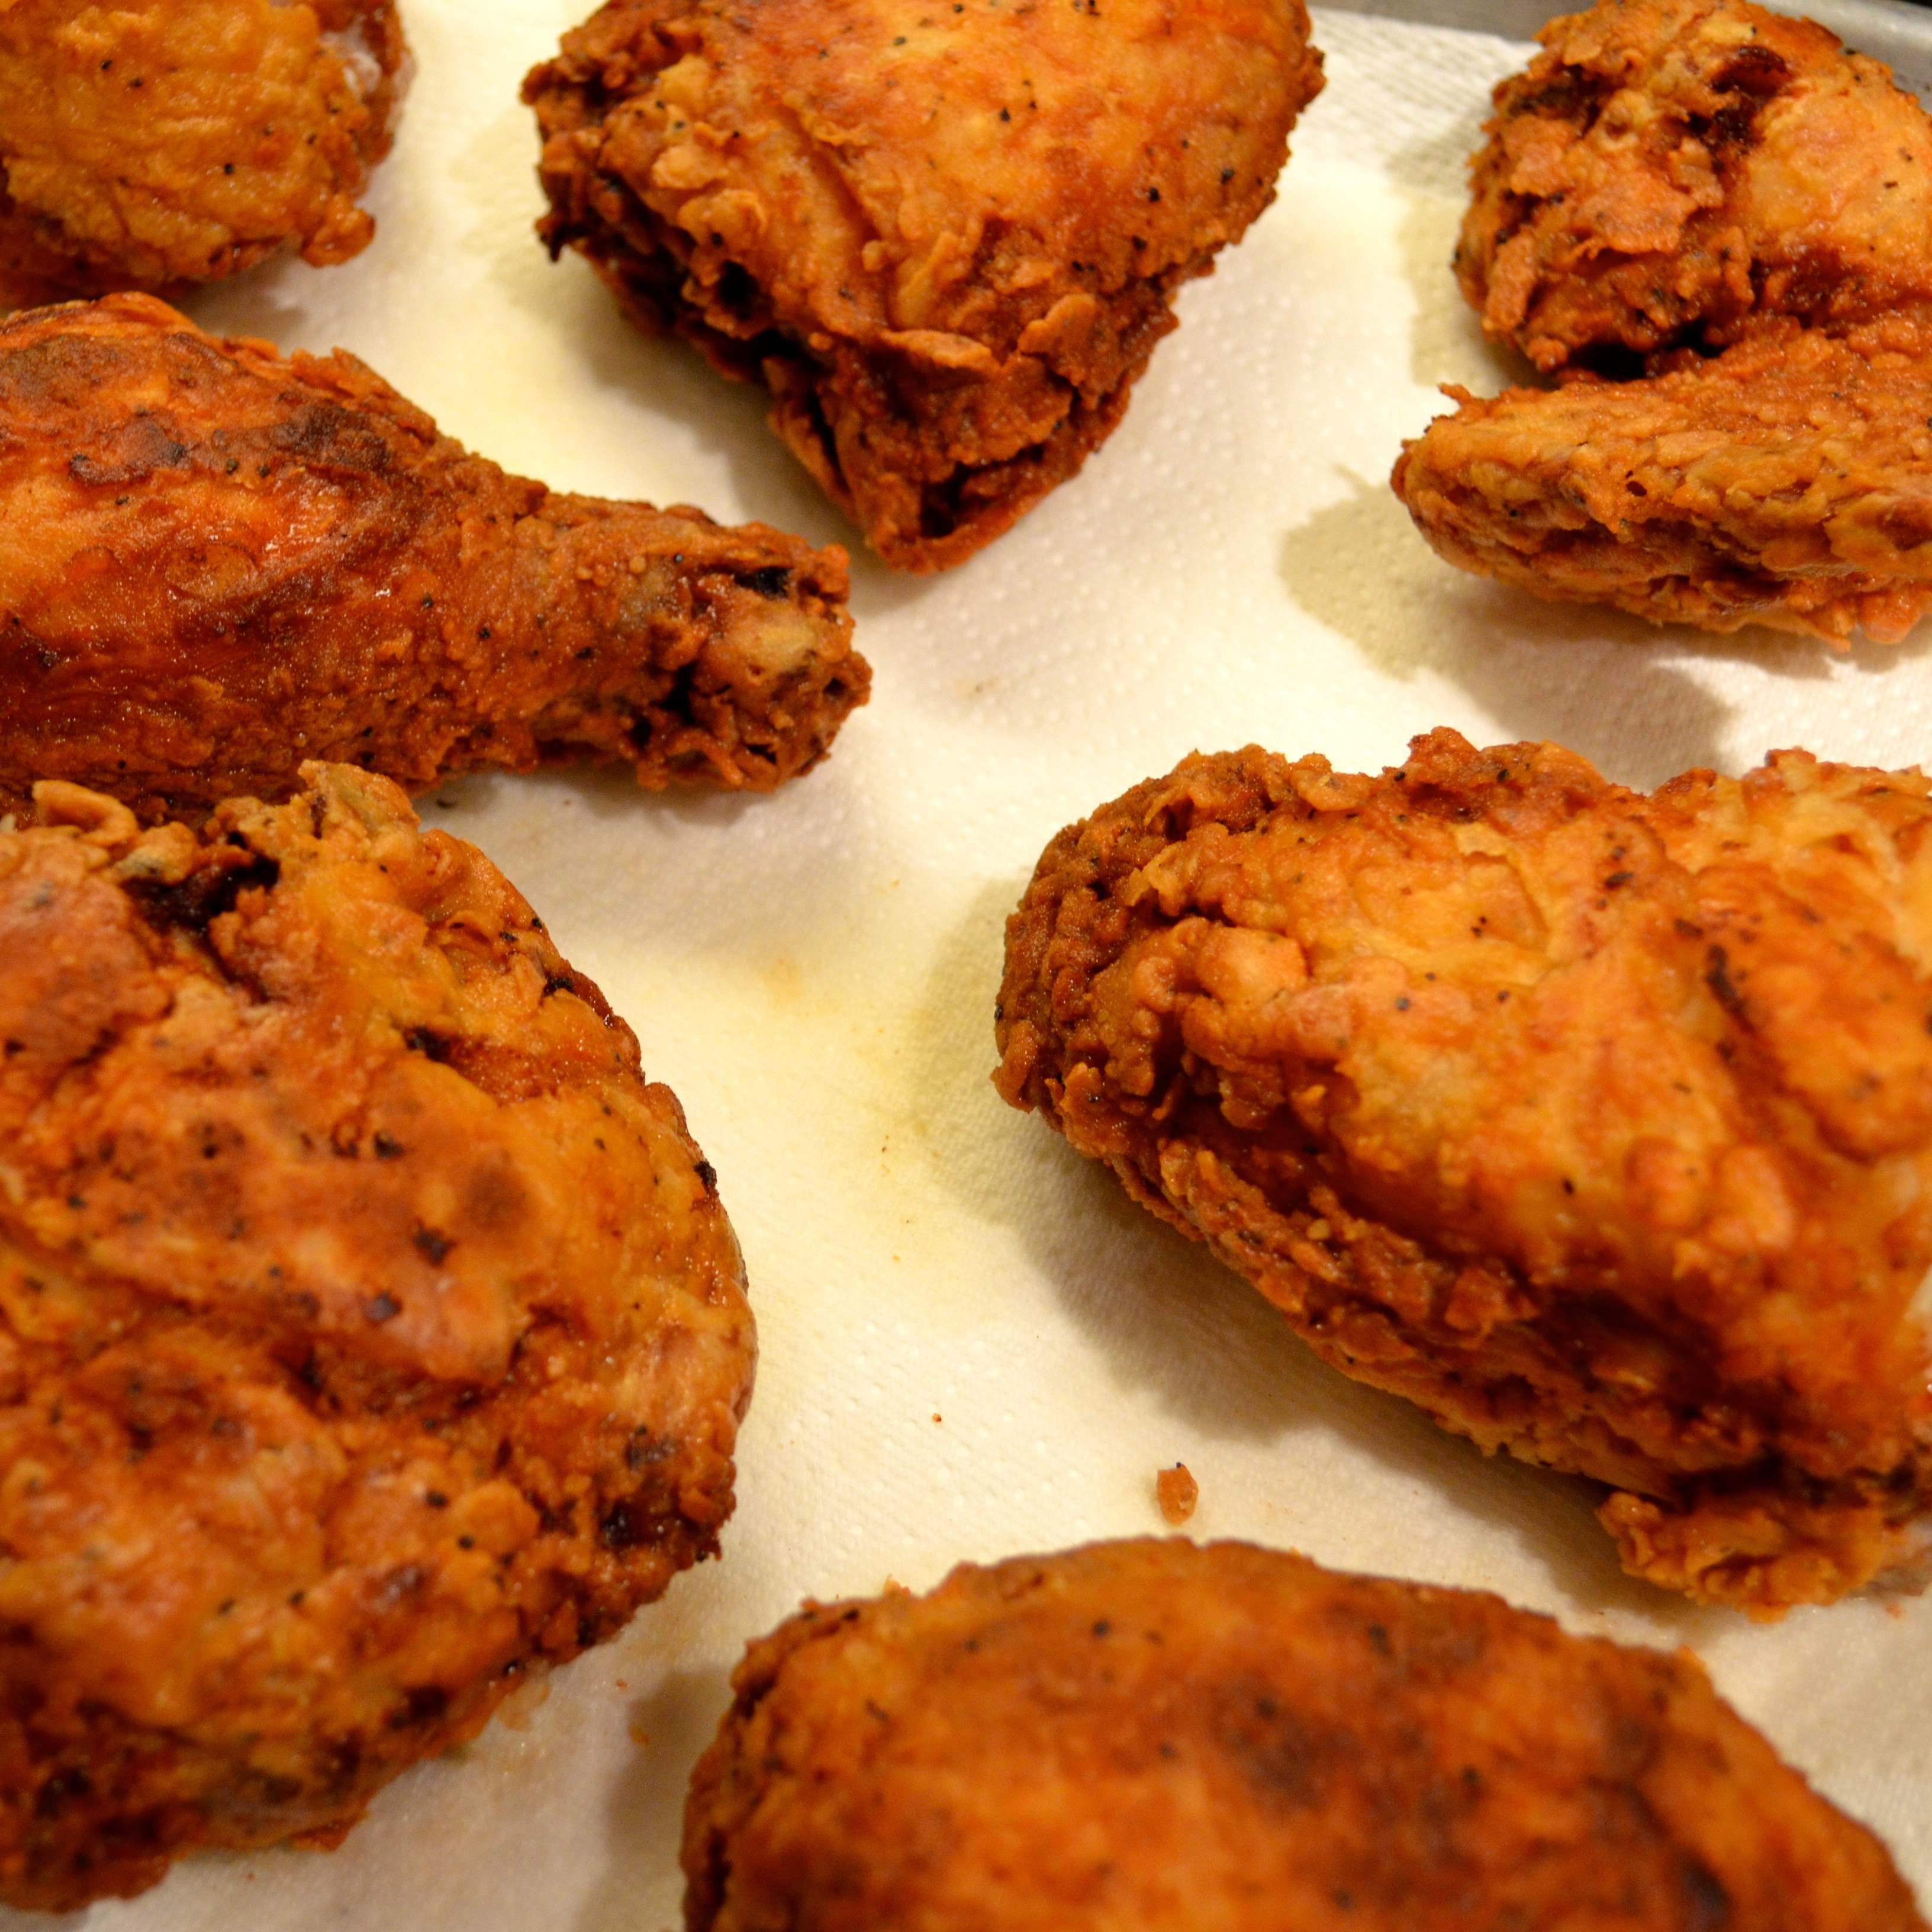 Best Fried Chicken  ESSENTIAL TIPS FOR MAKING THE BEST FRIED CHICKEN After